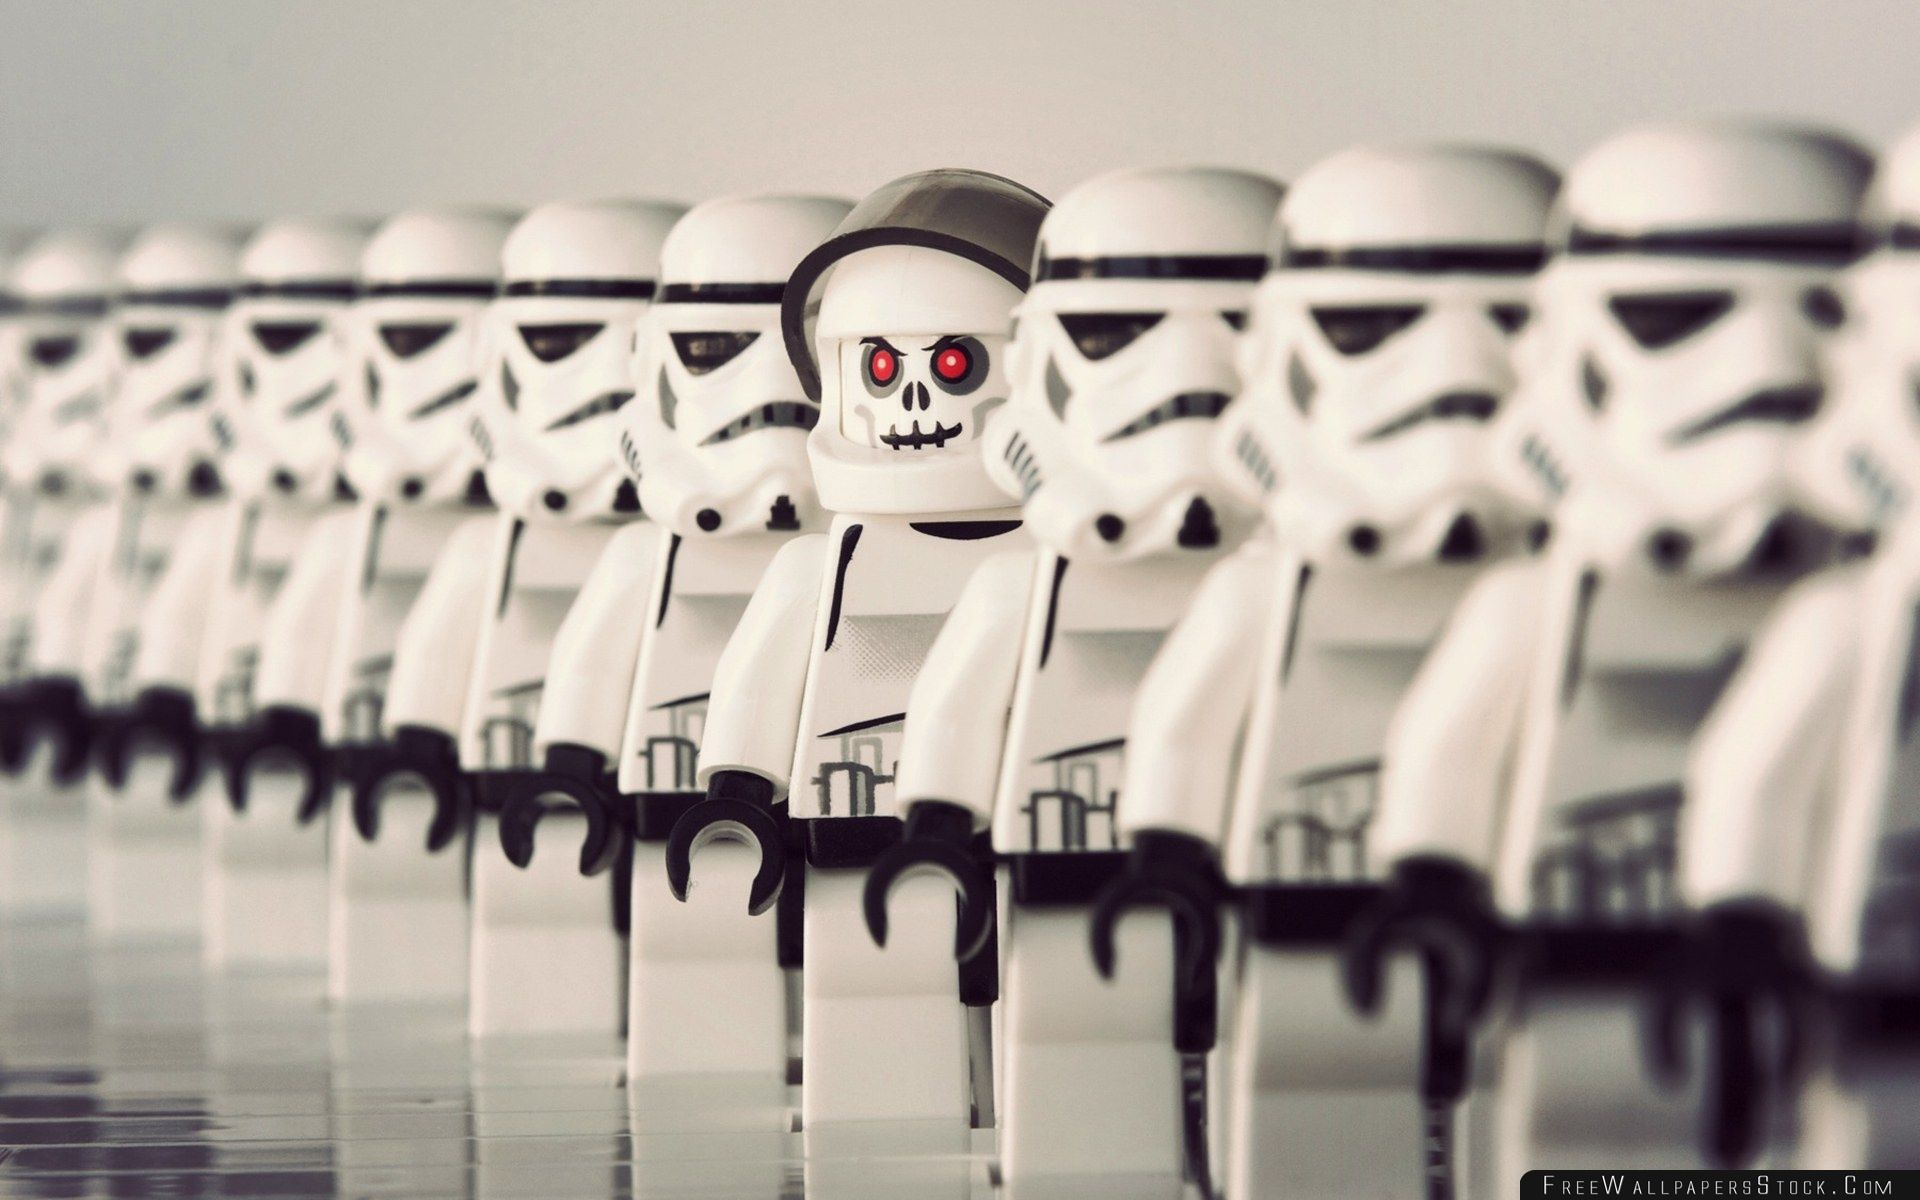 Download Free Wallpaper Stormtroopers Star Wars Lego